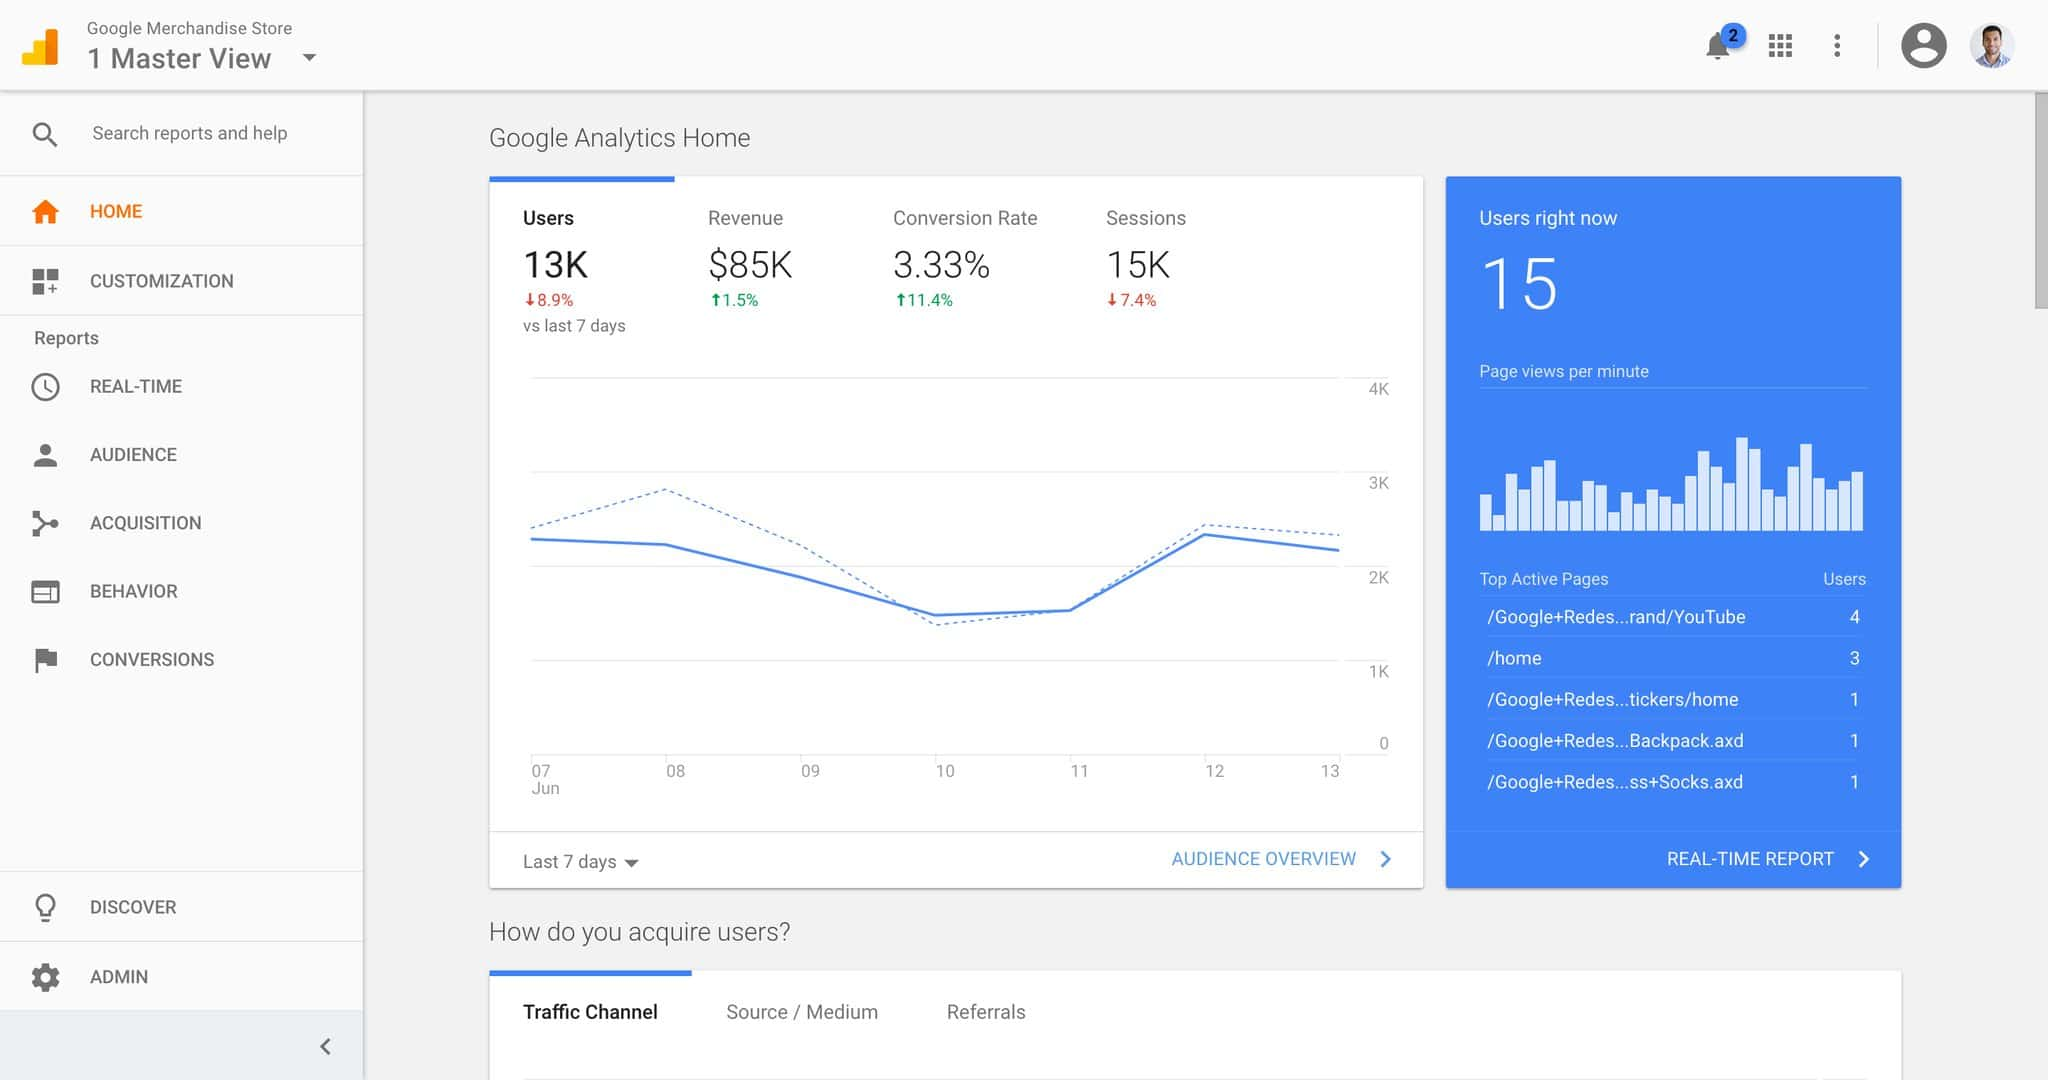 Quelle: https://www.searchenginejournal.com/new-google-analytics-home-screen-now-available-50-users/202782/